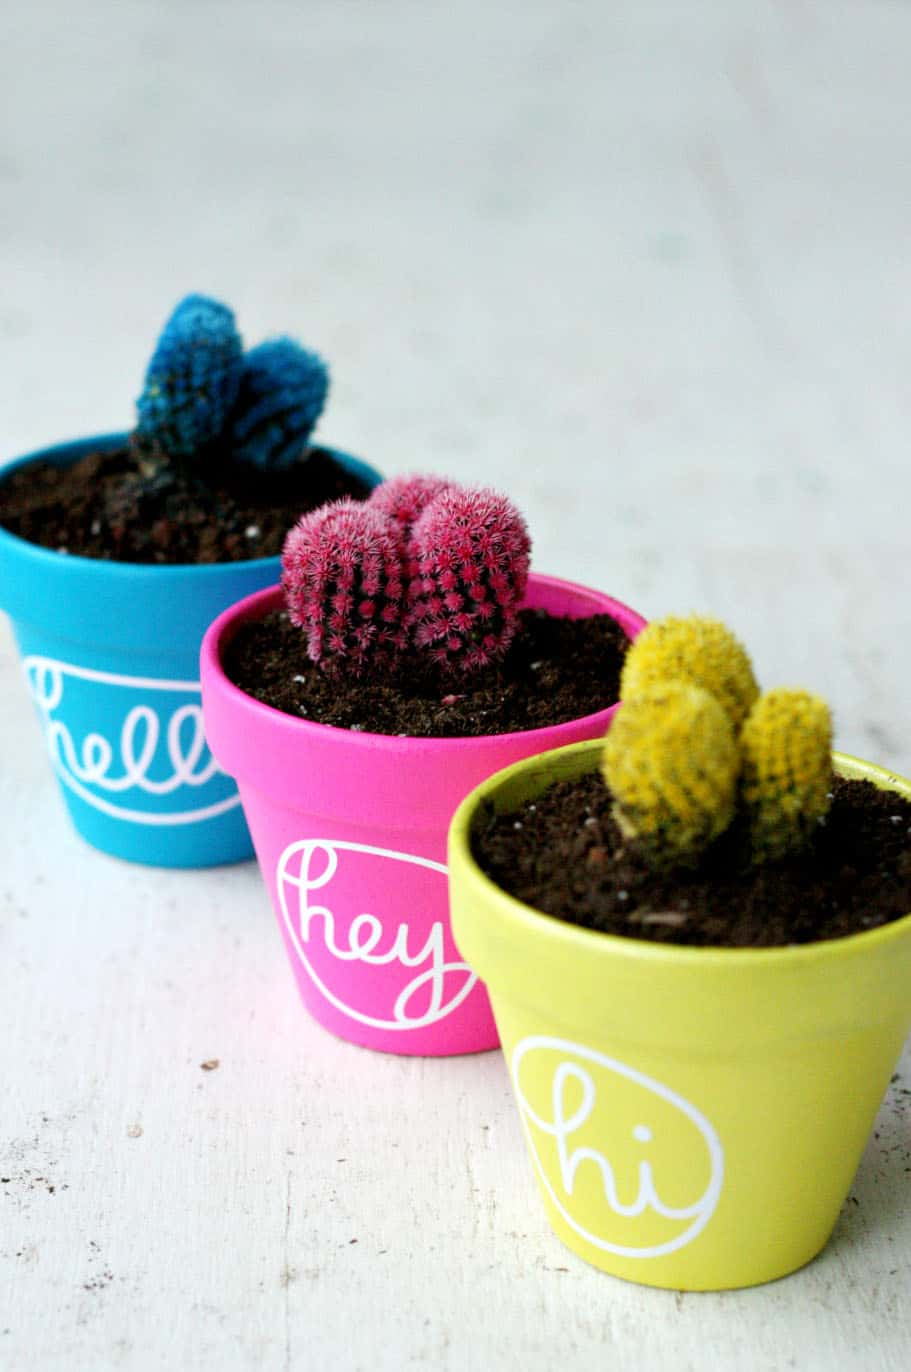 Make these easy painted pots using terra cotta planters and your favorite paint colors - the cute sayings will brighten up any dreary days!